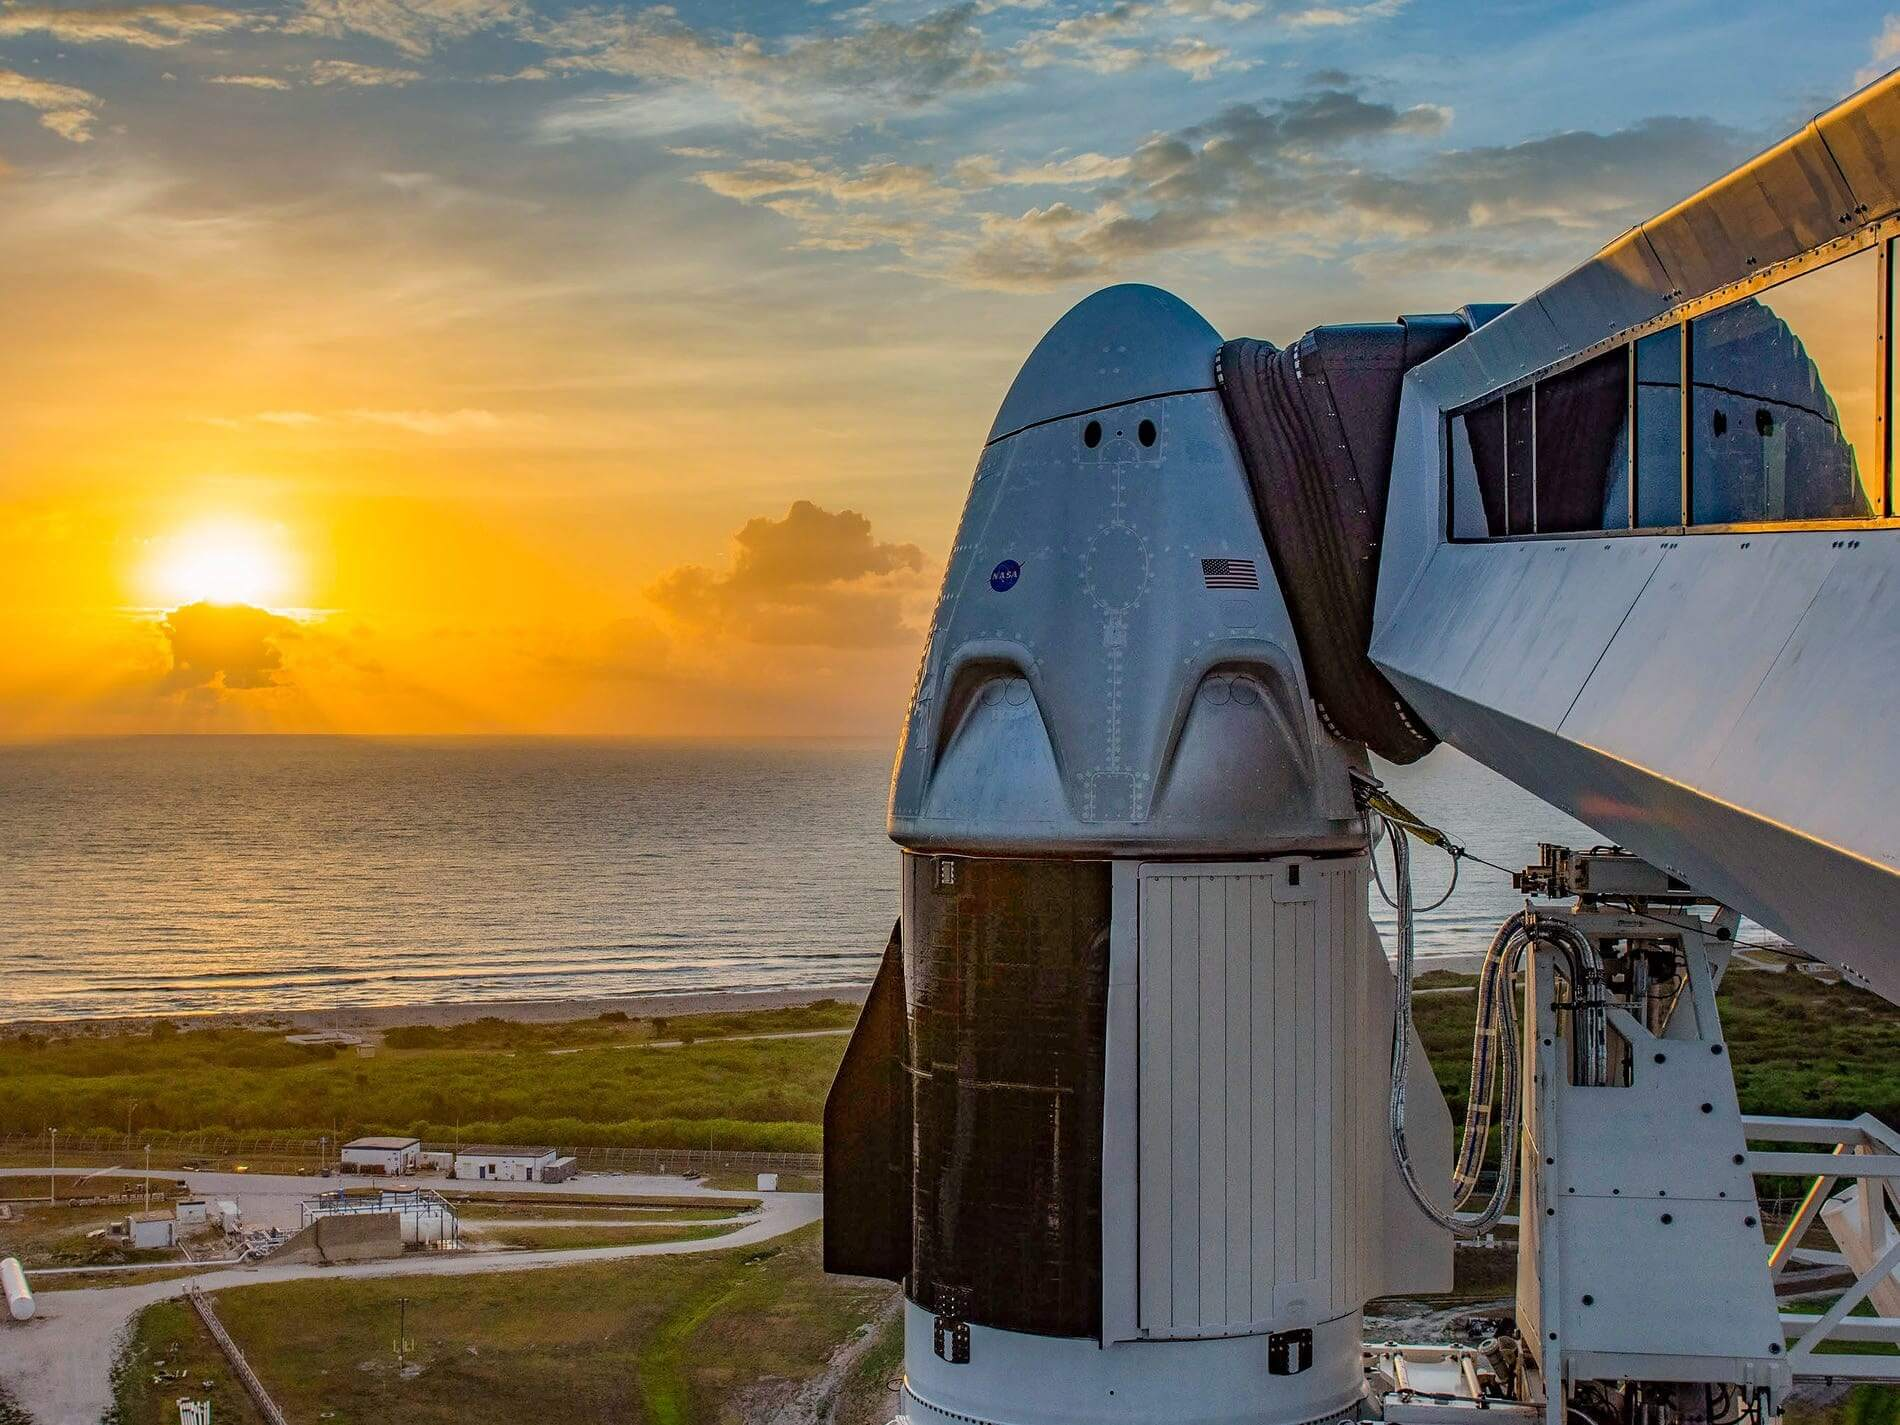 Bad weather delays SpaceX's crewed launch